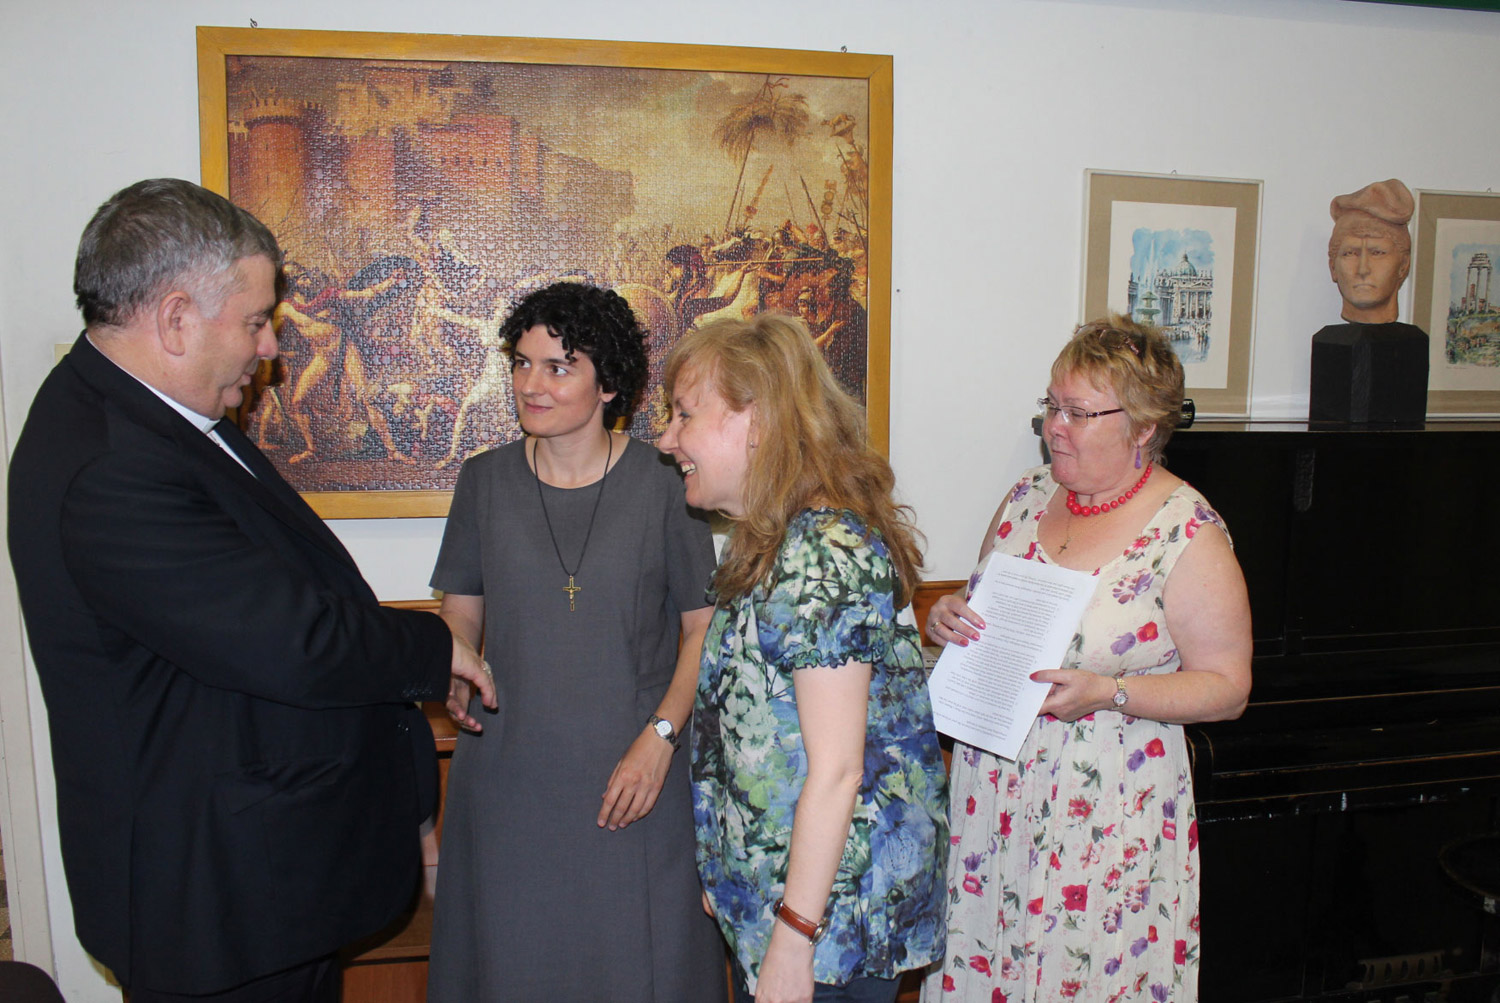 <b>Congress on Oblate Charism - Day 2 Rome</b><br>Archbishop Jose' Rodriguez Carballo OFM meets our women participants<br>Shanil Jayawardena OMI<br>July 1st, 2015